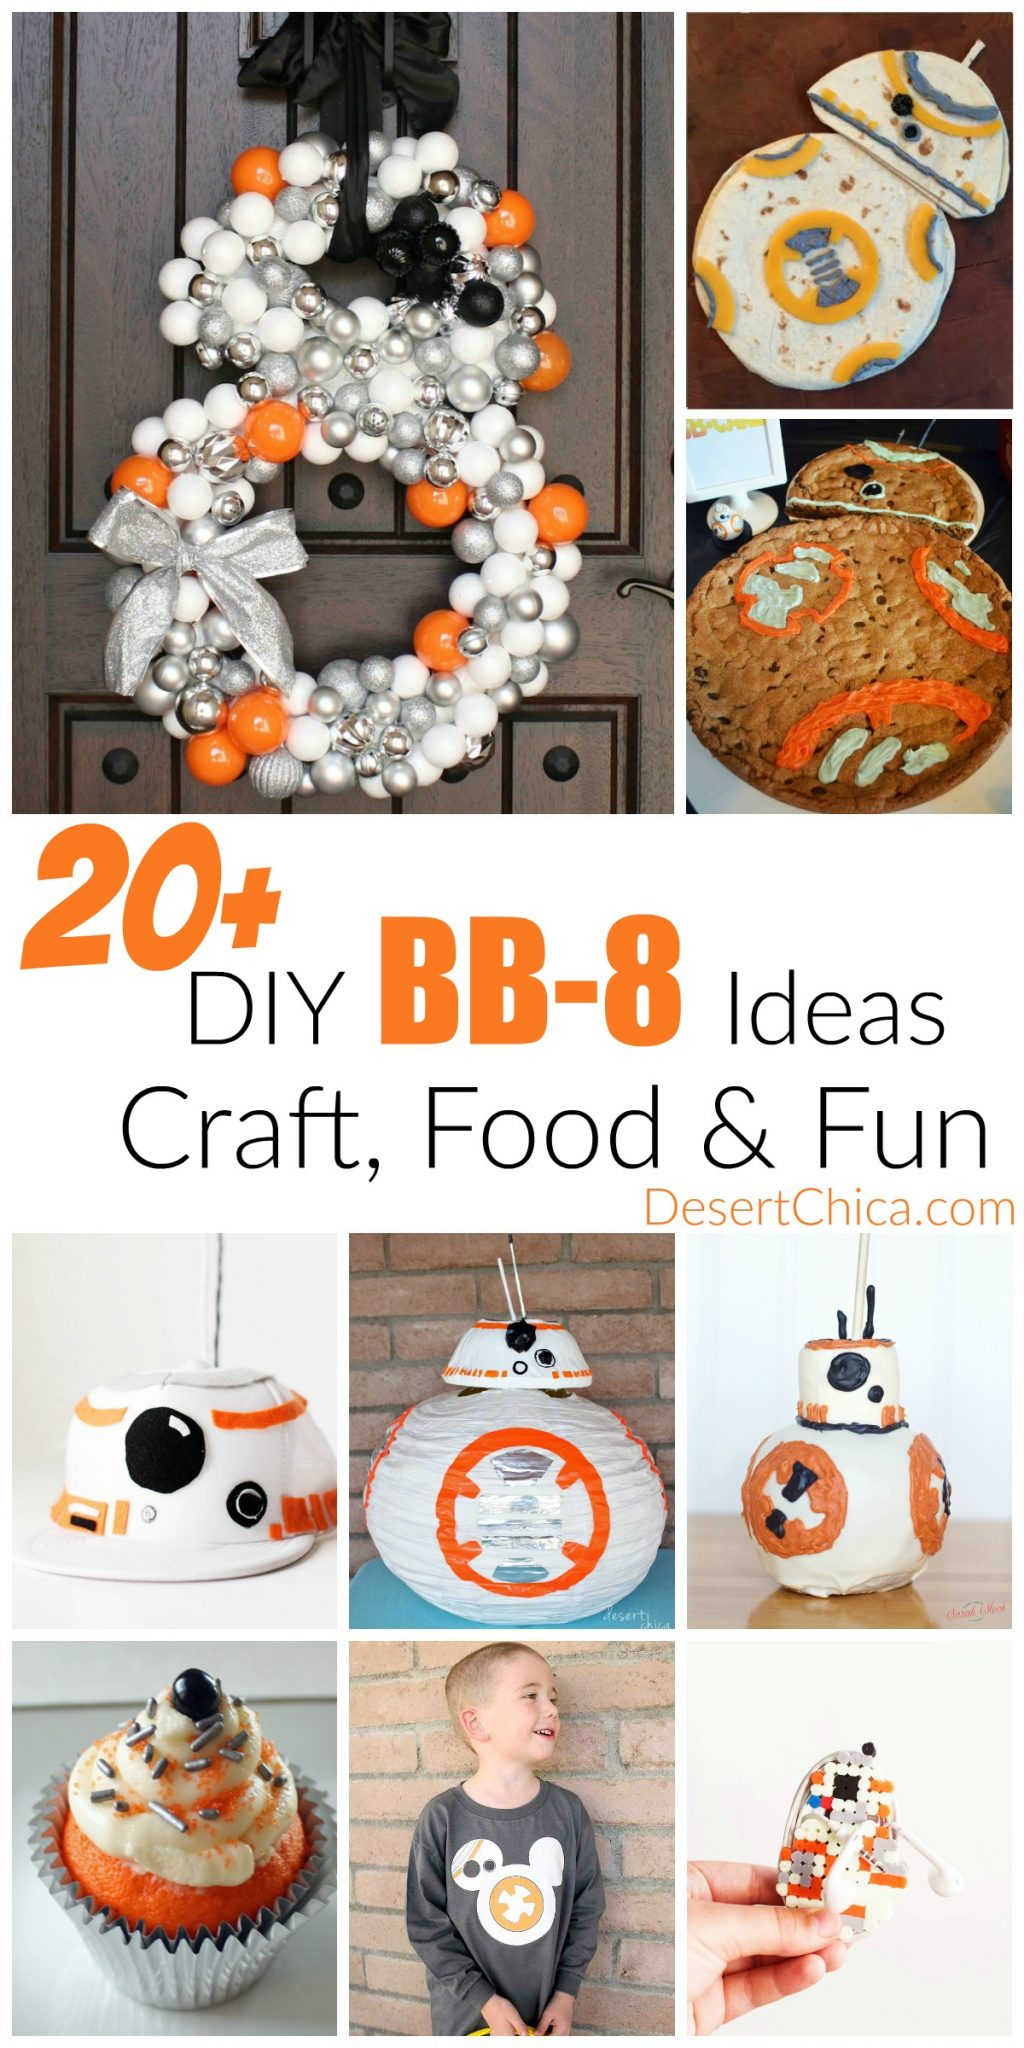 20 bb-8-crafts-food-fun-ideas